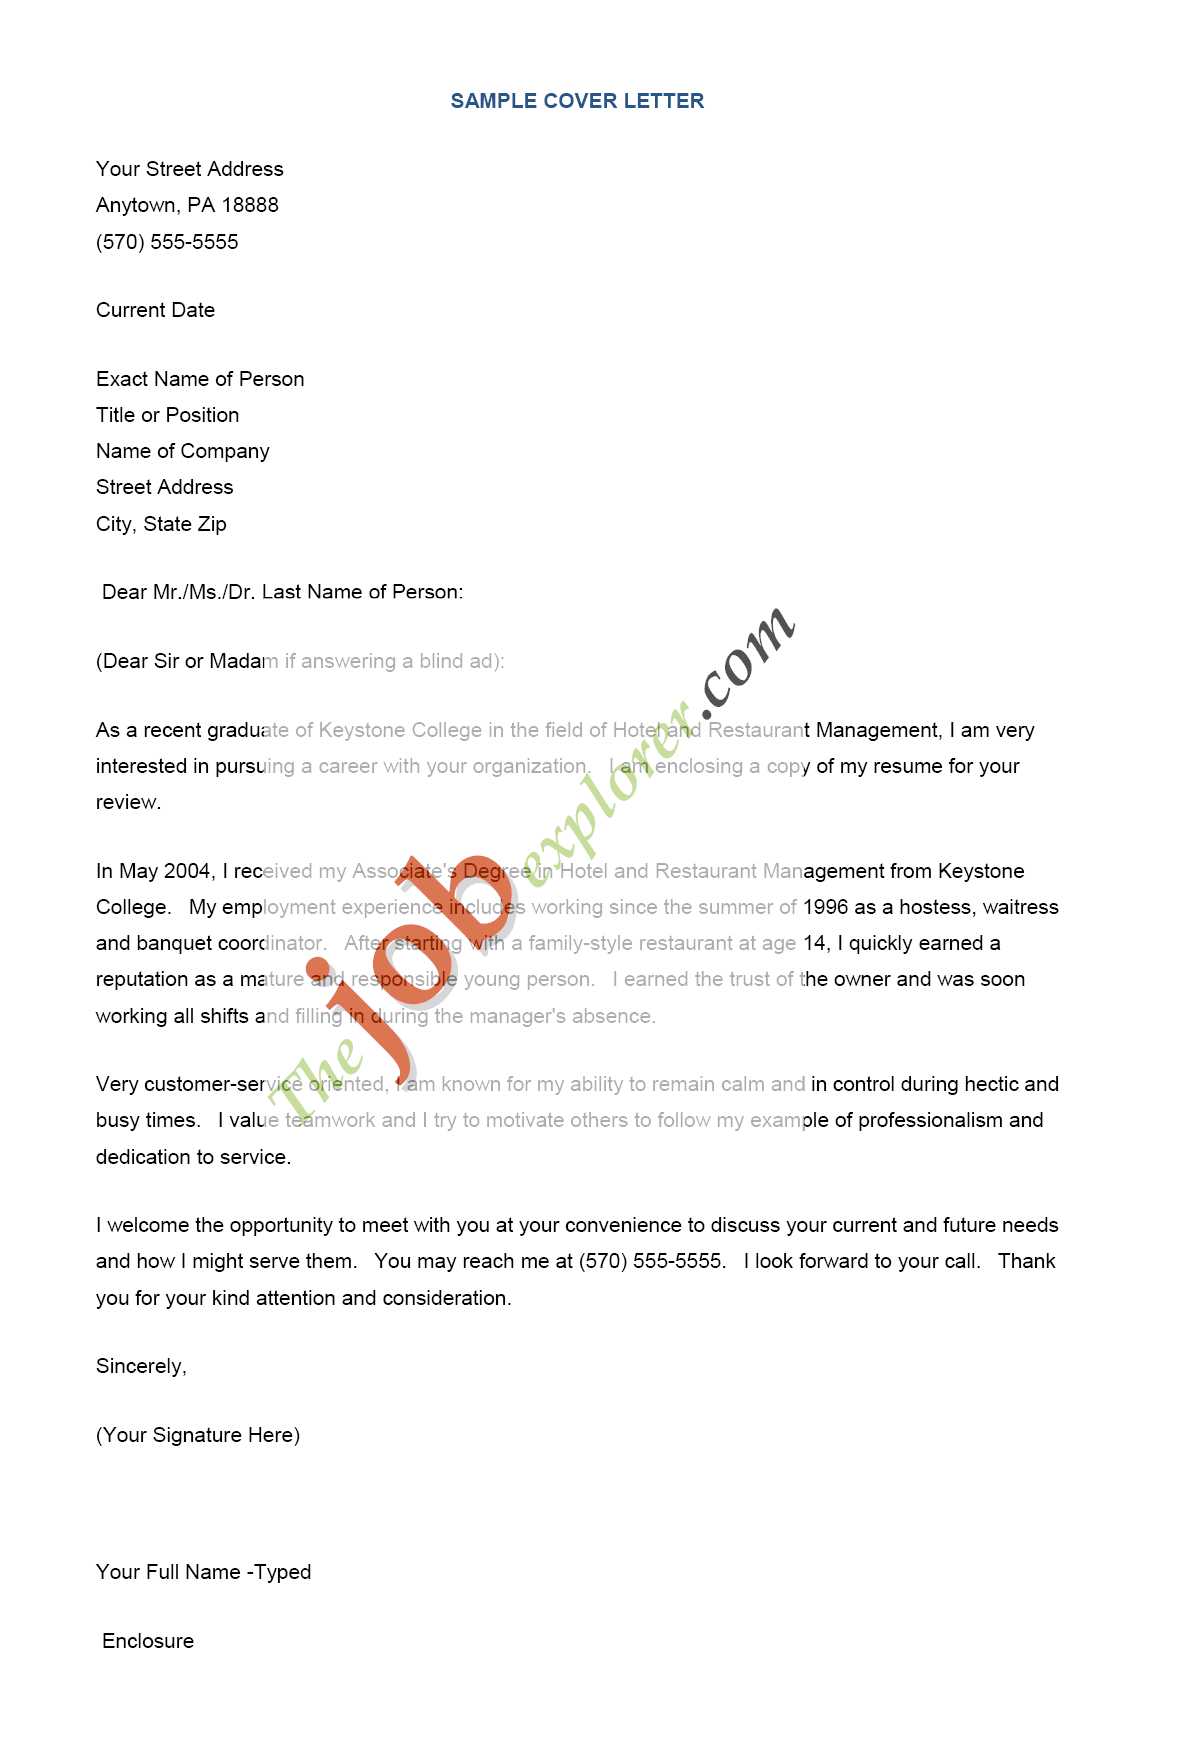 How To Write A Cover Letter For A Resume Job Resume Cover Letter Example Sample Letters For Jobs